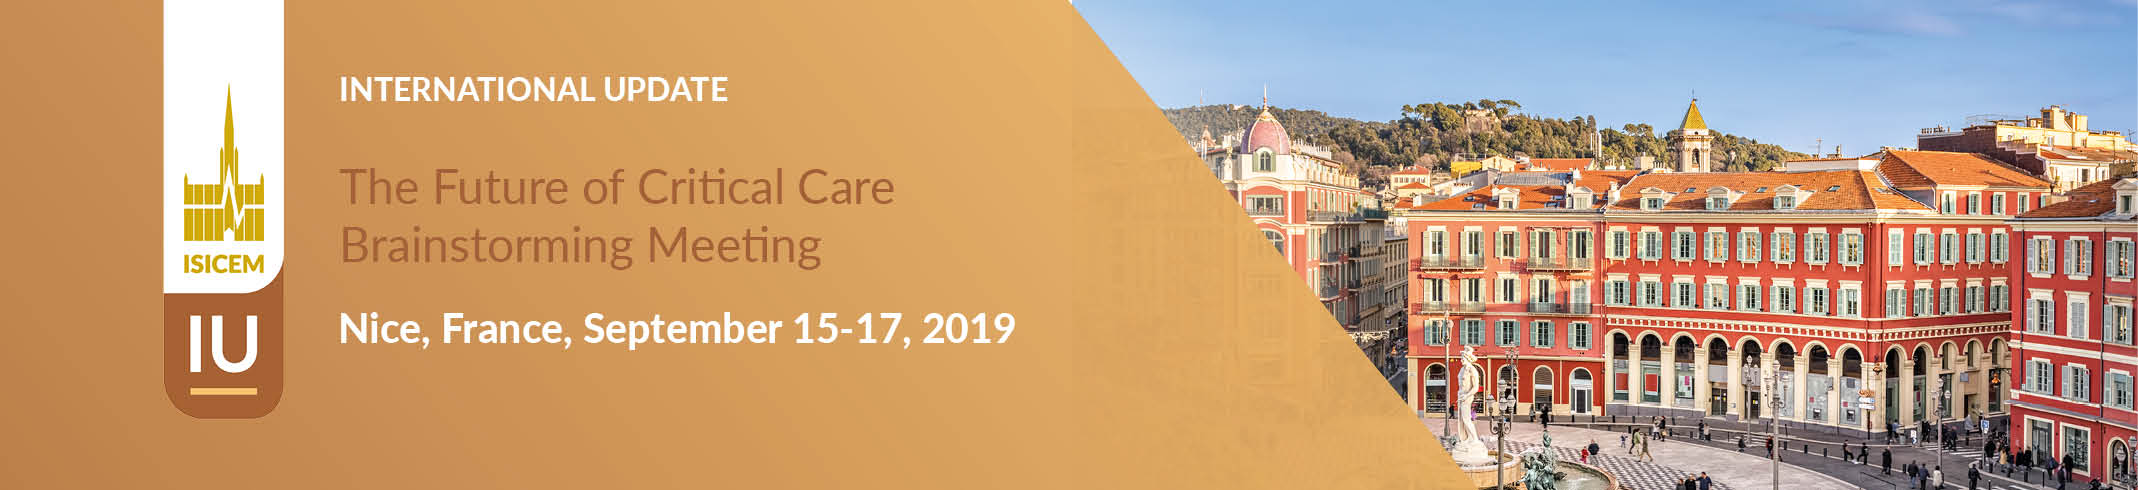 ISICEM - International Symposium on Intensive Care and